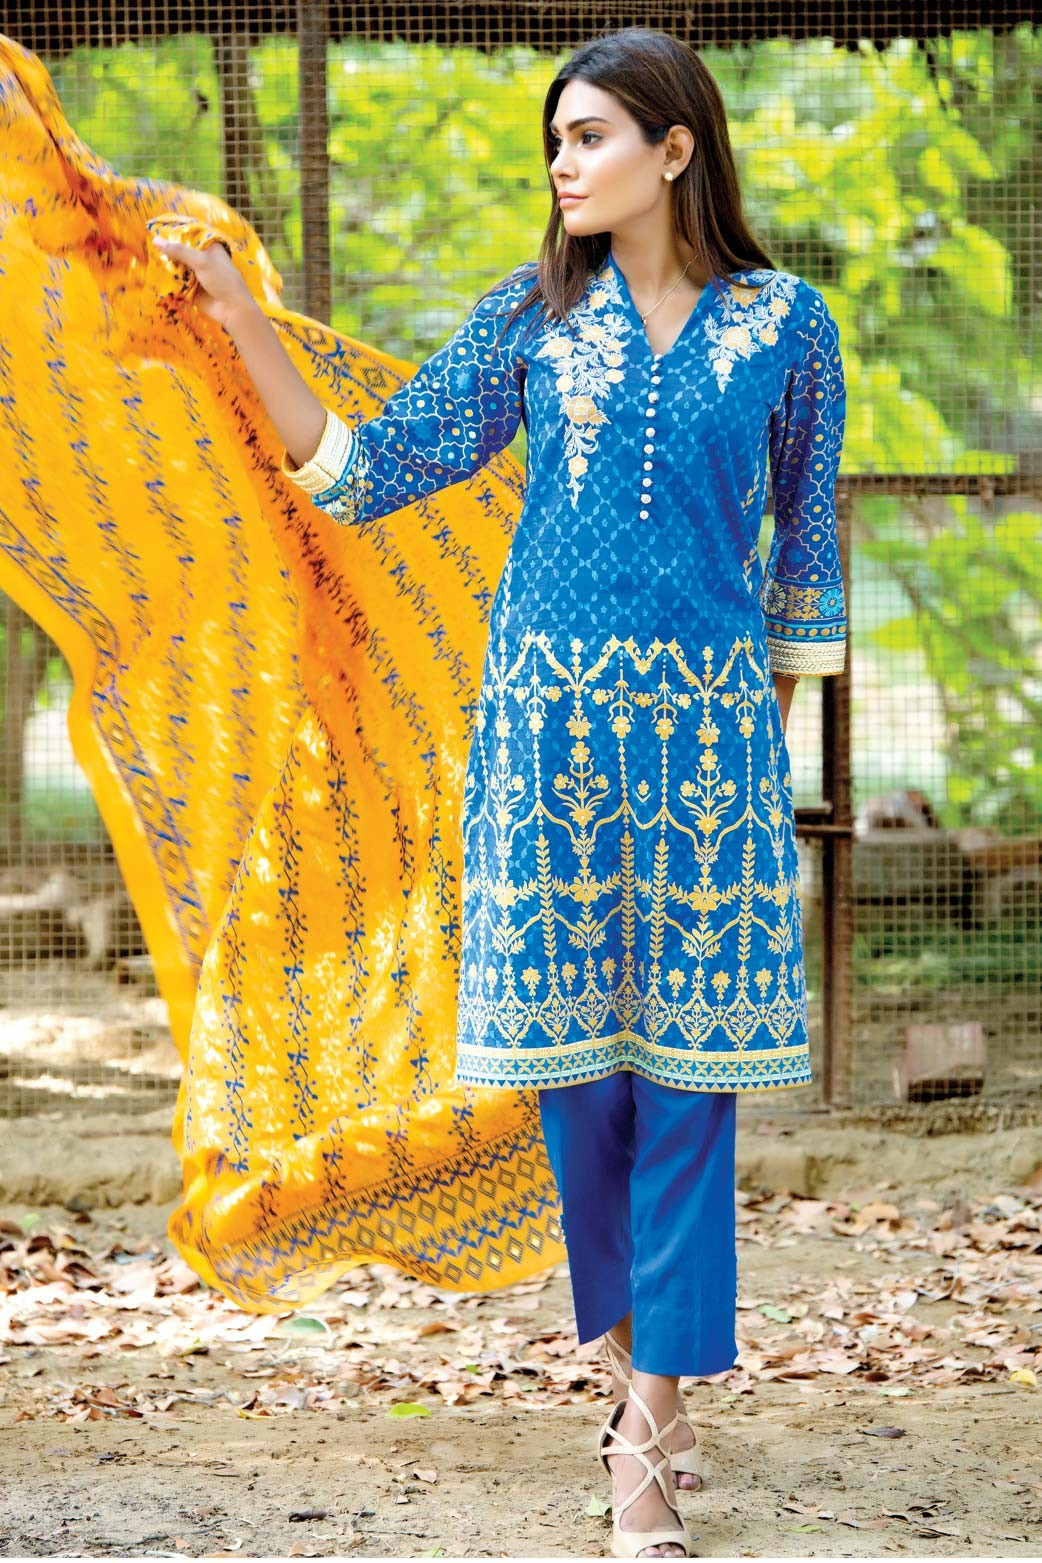 Zeen Embroidered Eid Luxurious Collection 2016-2017 for Women (21)